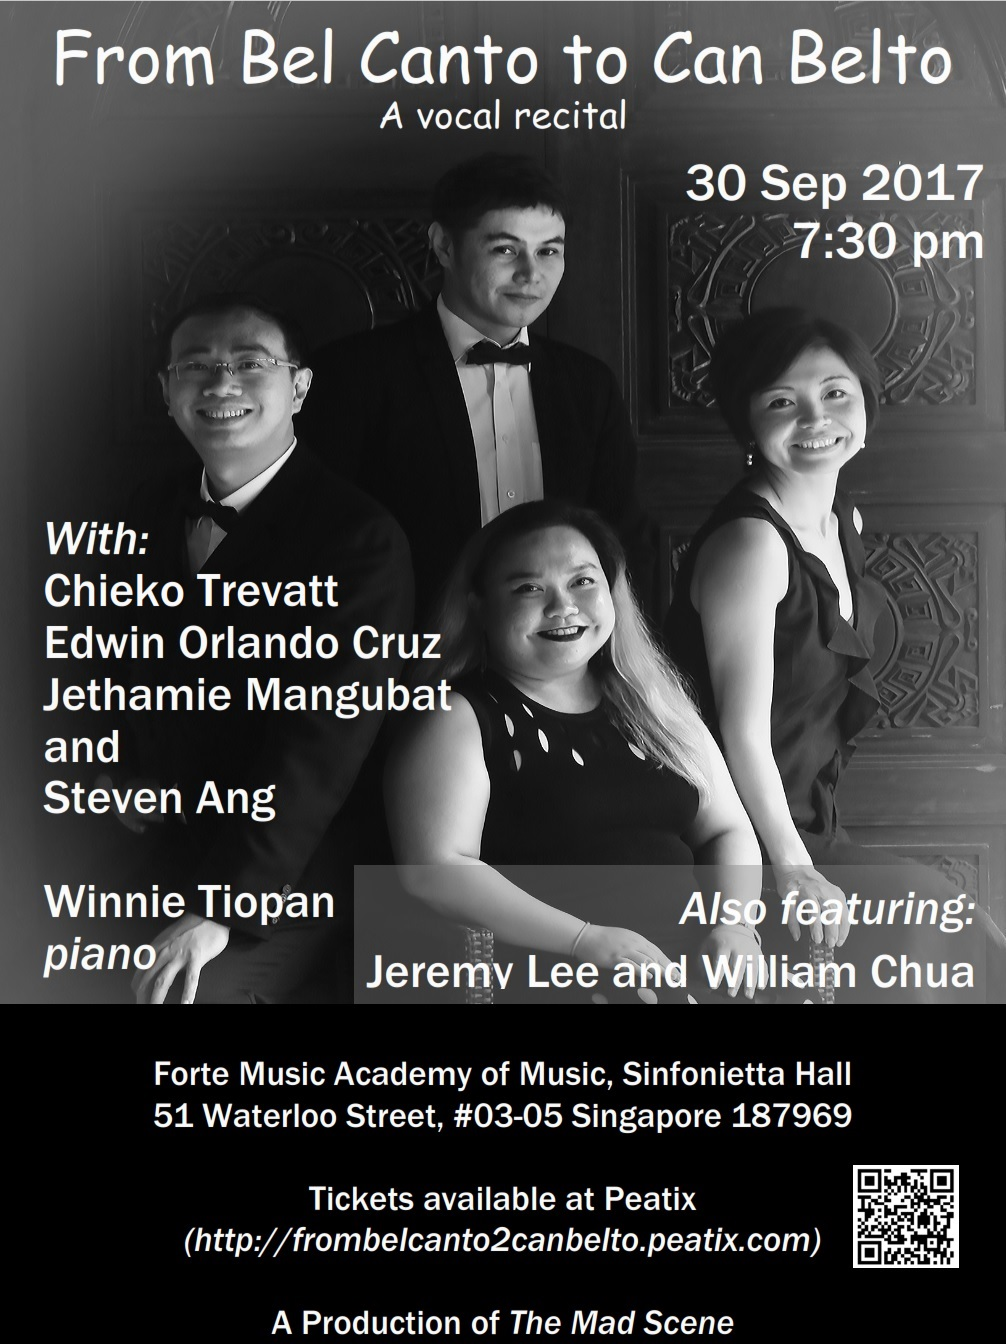 Vocal Recital: From Bel Canto to Can Belto - 30 Sep 2017